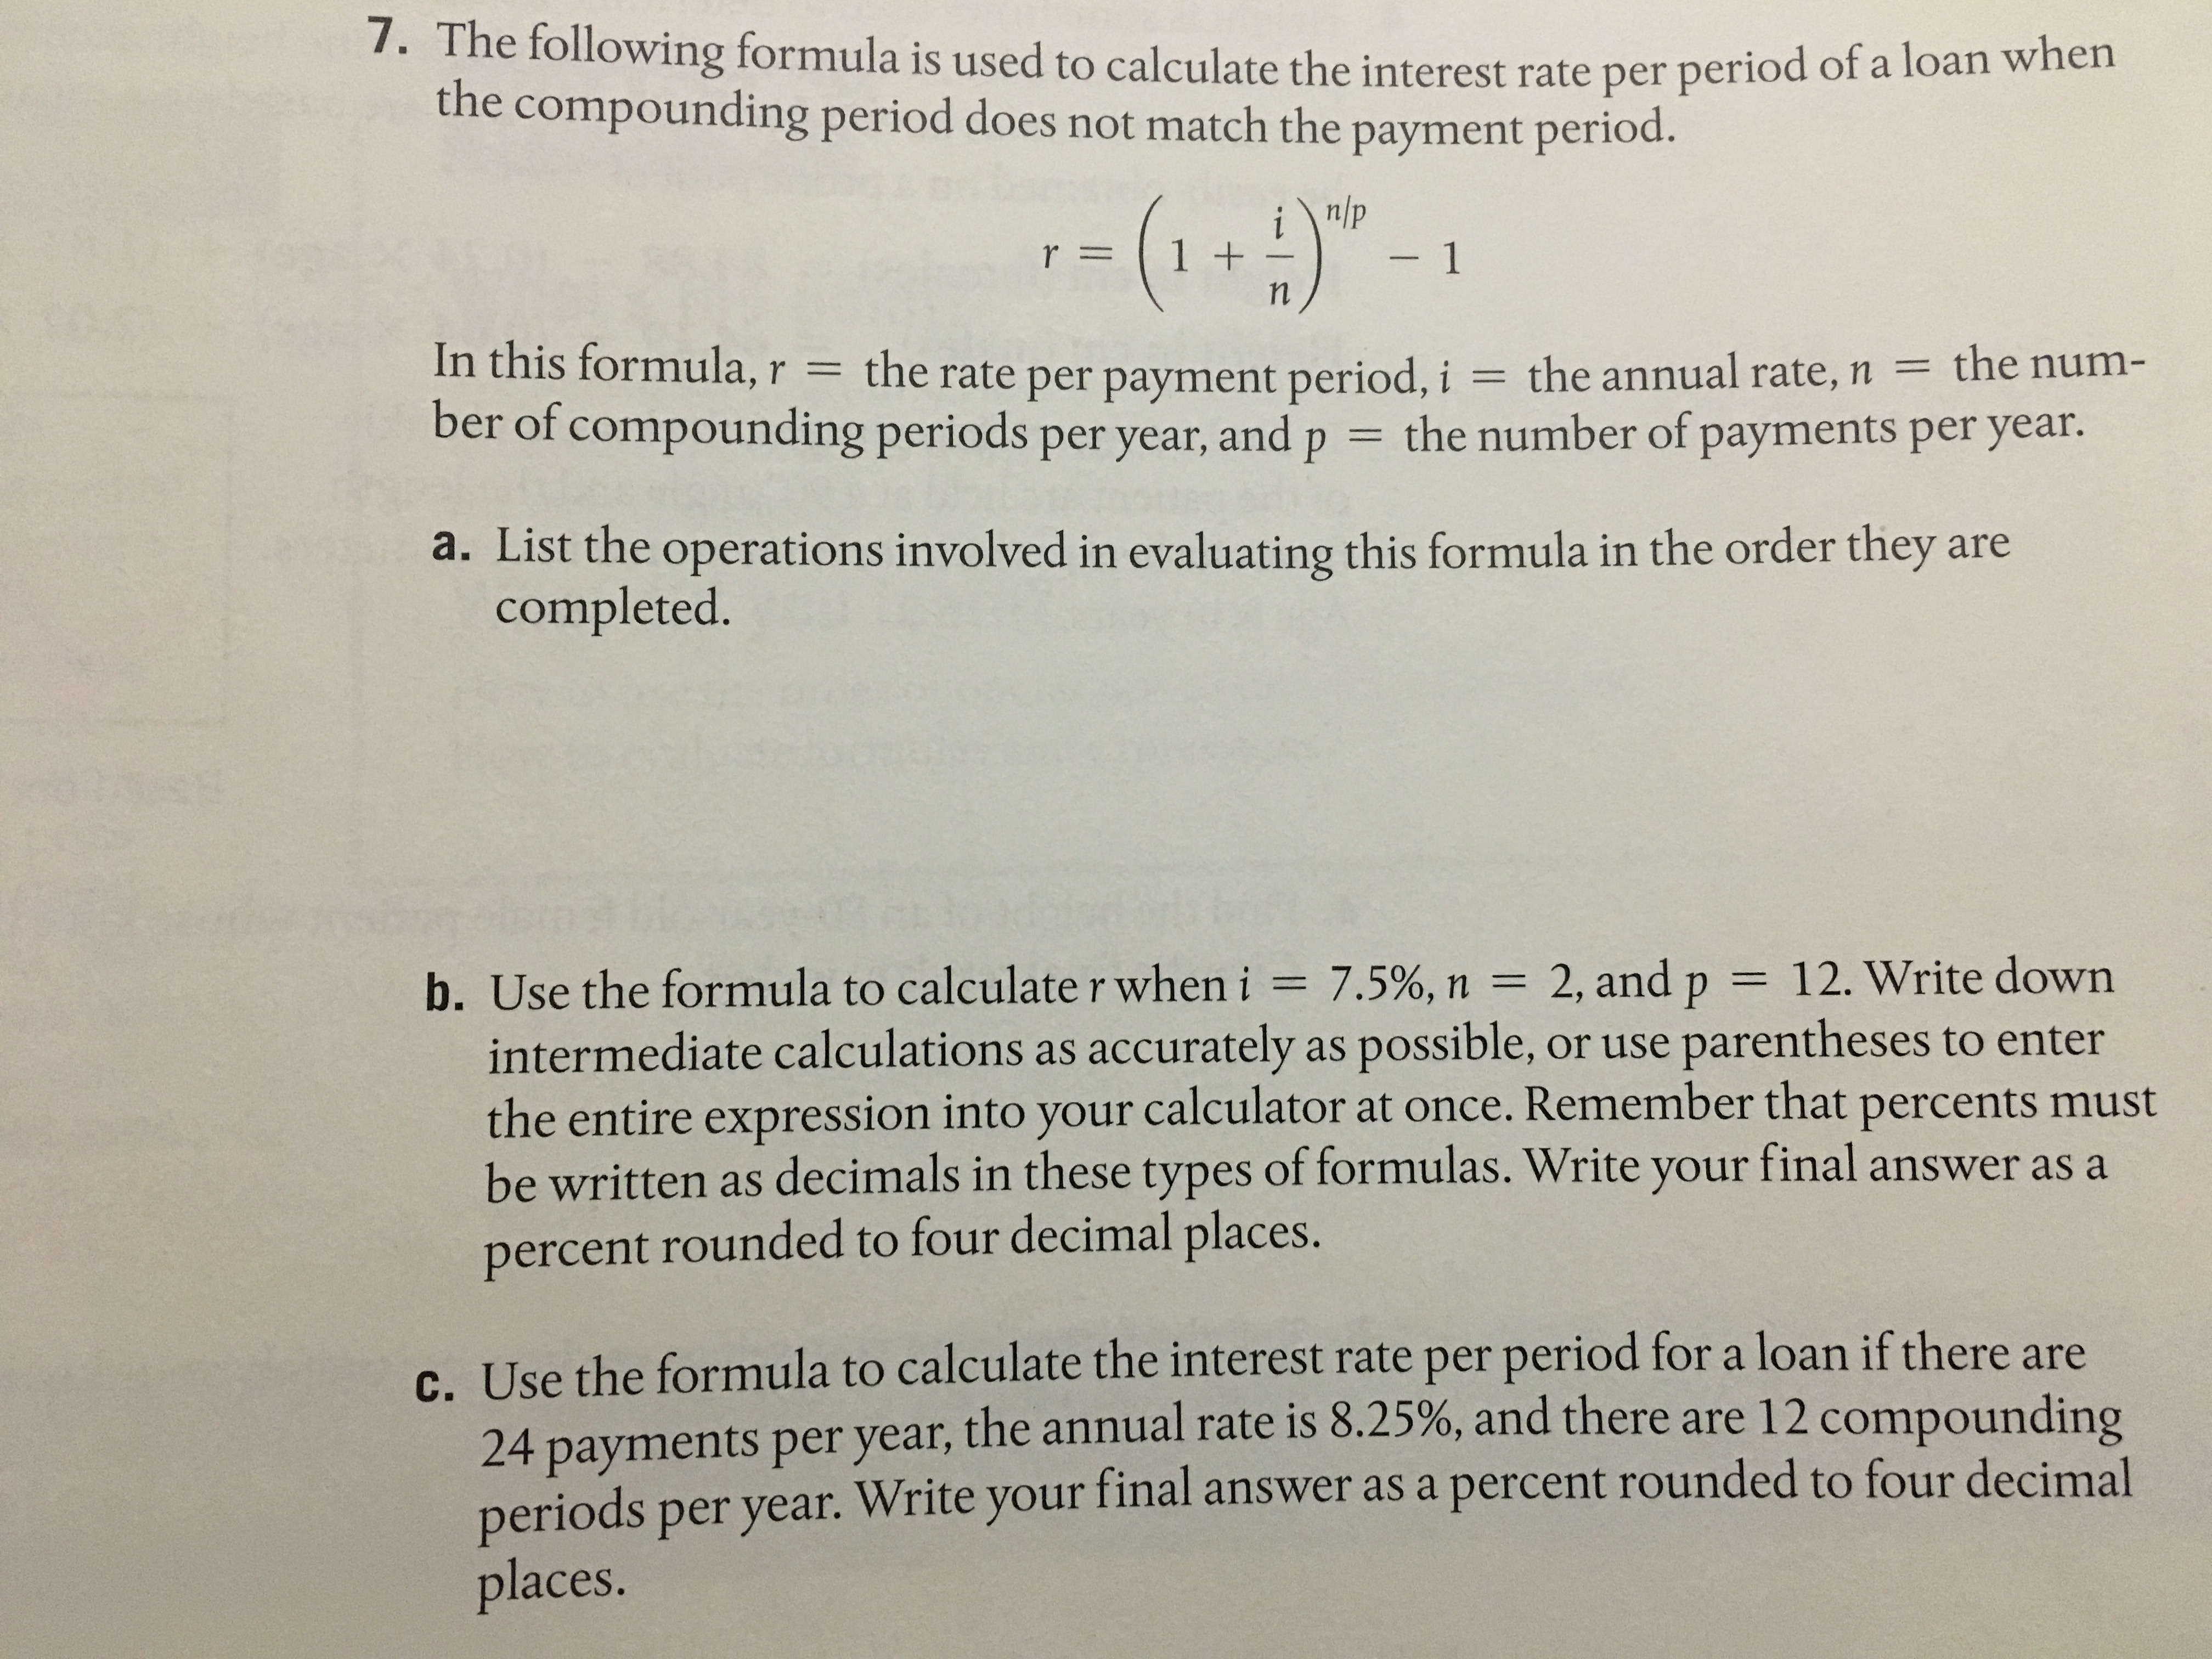 7. The following formula is used to calculate the interest rate per period o f a loan when the compounding period does not match the payment period. n/p r 11 In this formula,r the rate per payment period, i the annual rate, n the num- ber of compounding periods per year, and p the number of payments per year. a. List the operations involved in evaluating this formula in the order they are completed. b. Use the formula to calculate r when i 7.5%, n 2, and p 12. Write down intermediate calculations as accurately as possible, or use parentheses to enter the entire expression into your calculator at once. Remember that percents must be written as decimals in these types of formulas. Write your final answer as a percent rounded to four decimal places. c. Use the formula to calculate the interest rate per period for a loan if there are 4 payments per year, the annual rate is 8.25%, and there are 12 compounding periods per year. Write your final answer as a places